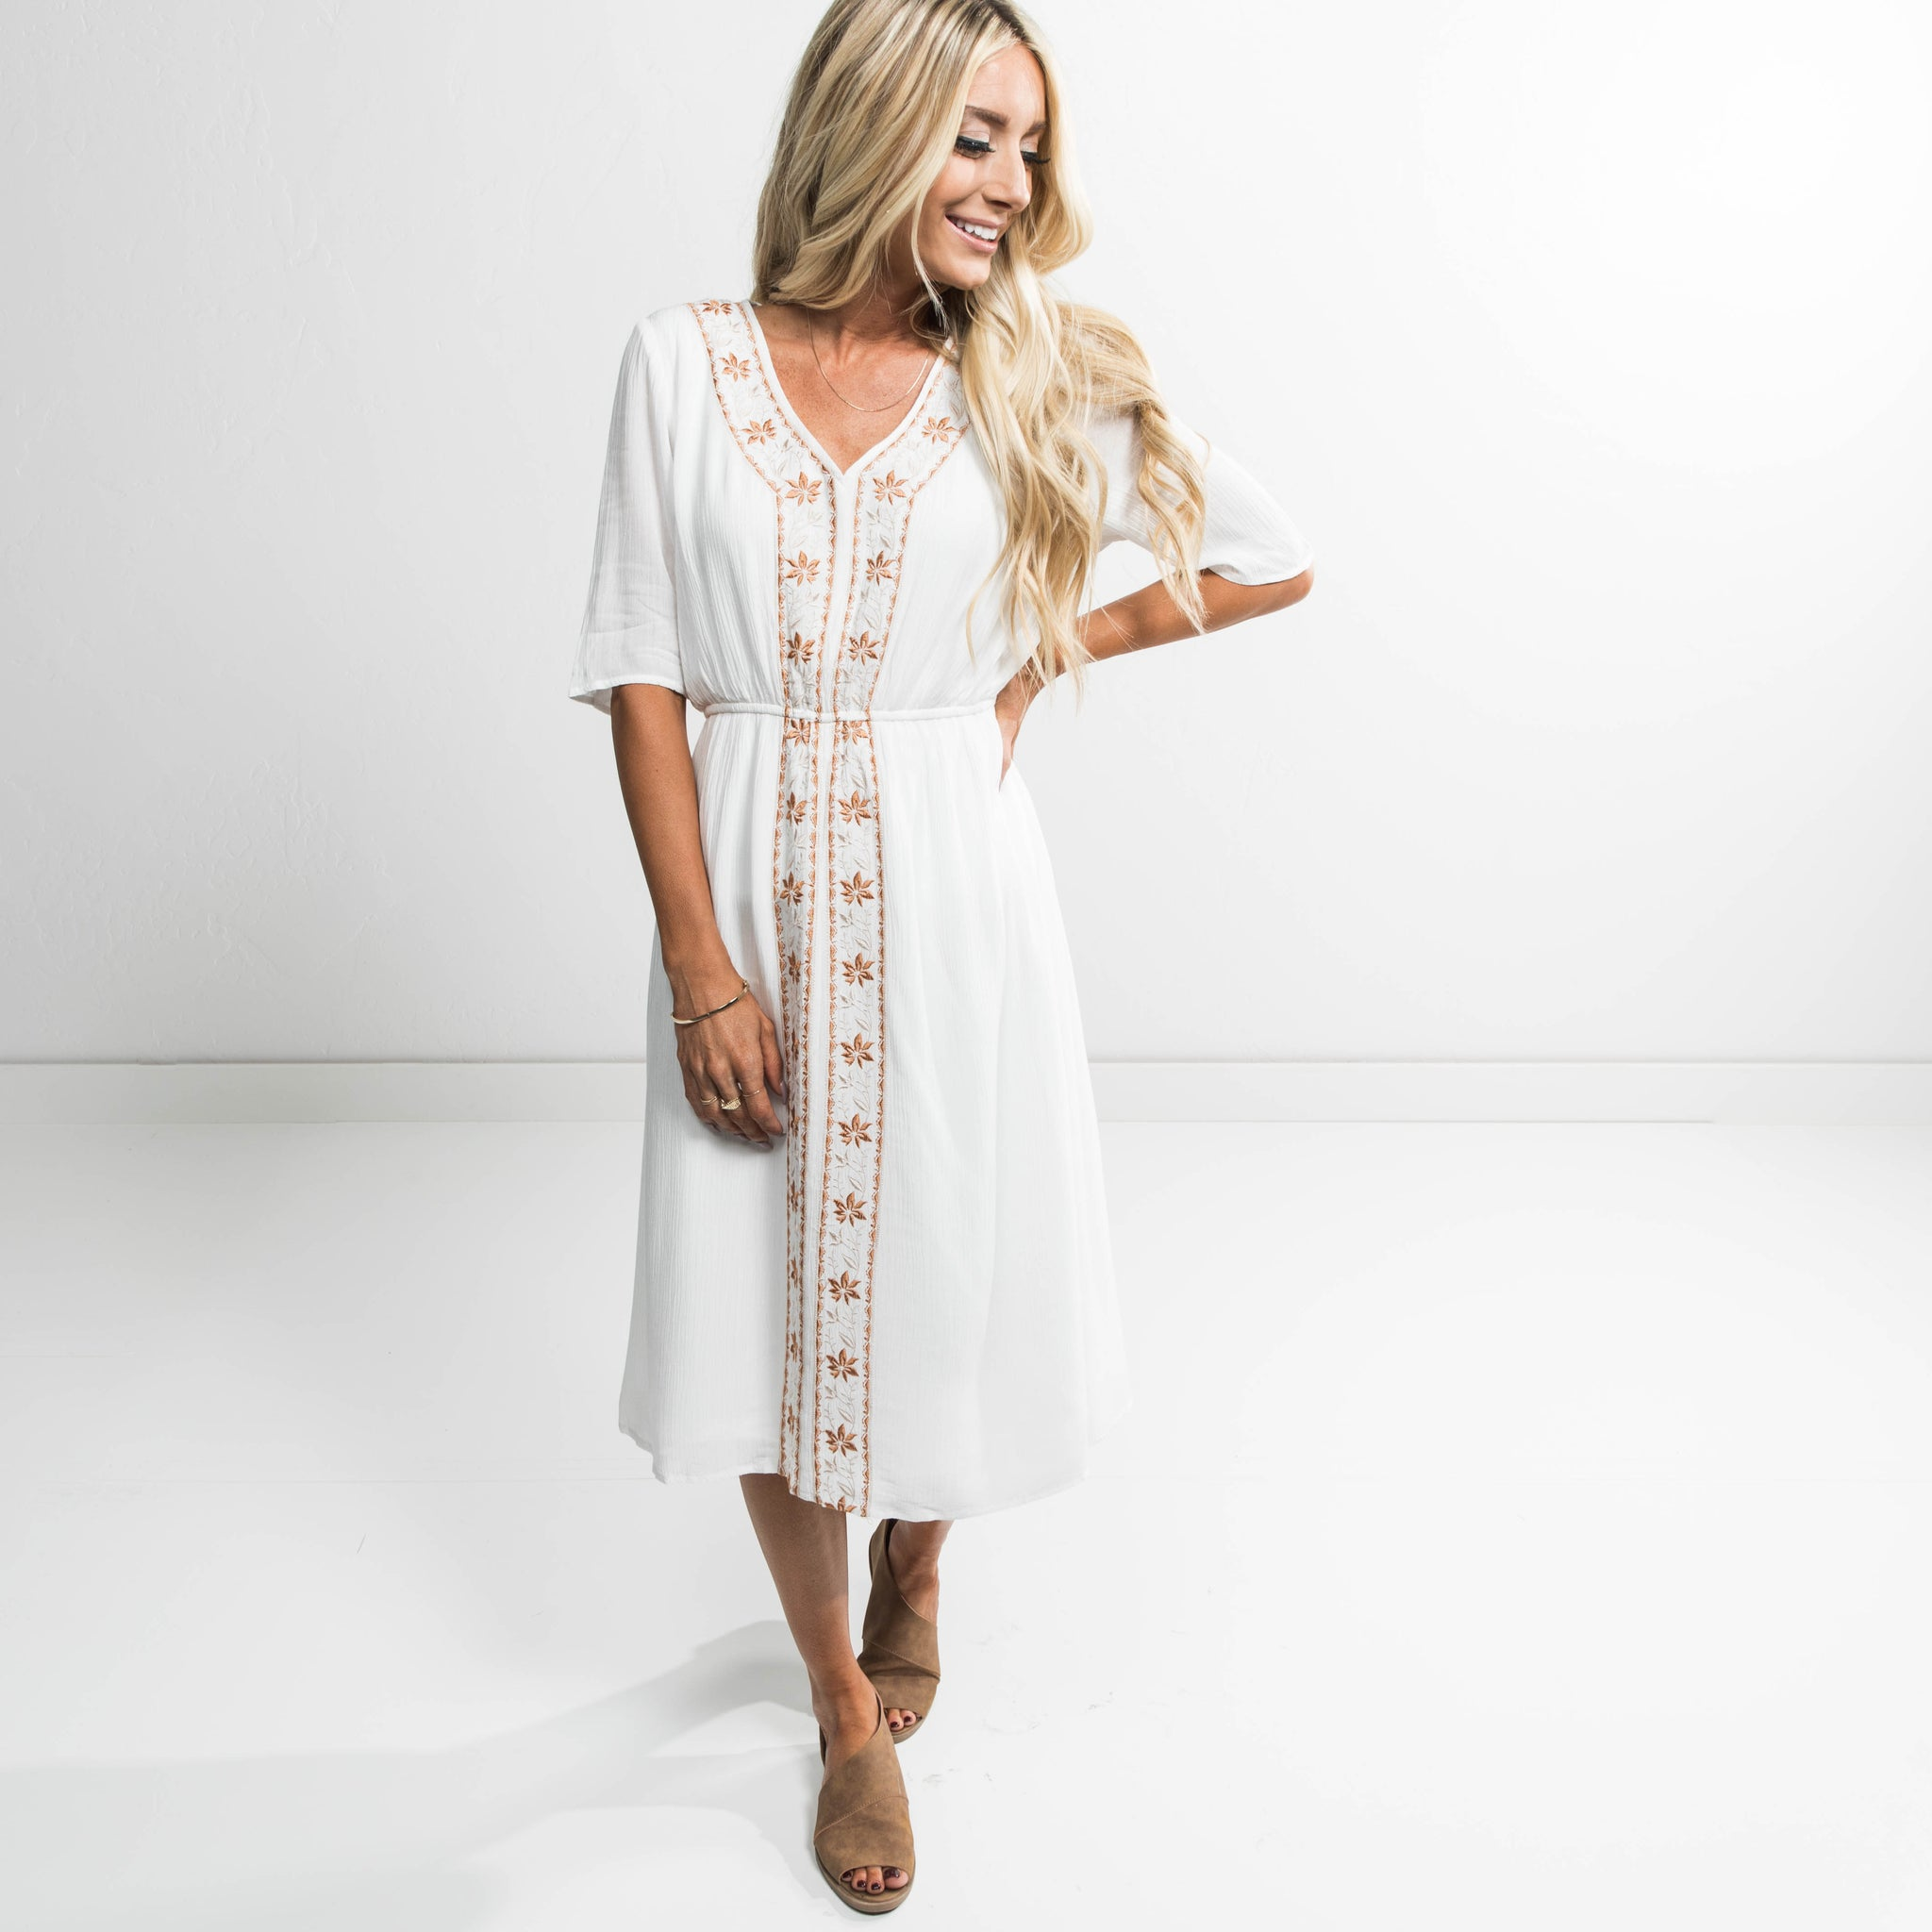 Hayes Cinched Dress